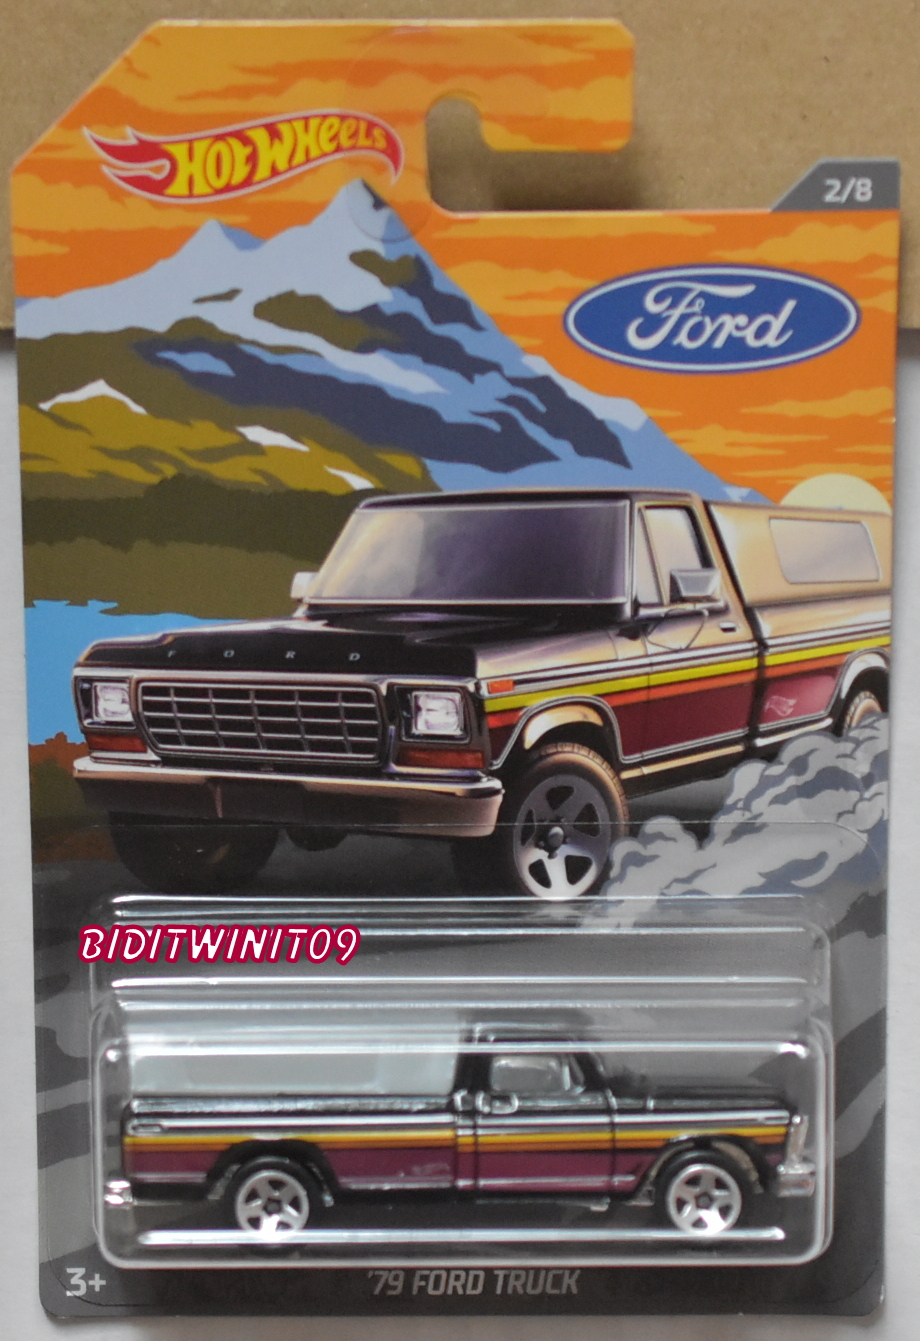 HOT WHEELS 2018 FORD TRUCK '79 FORD TRUCK #2/8